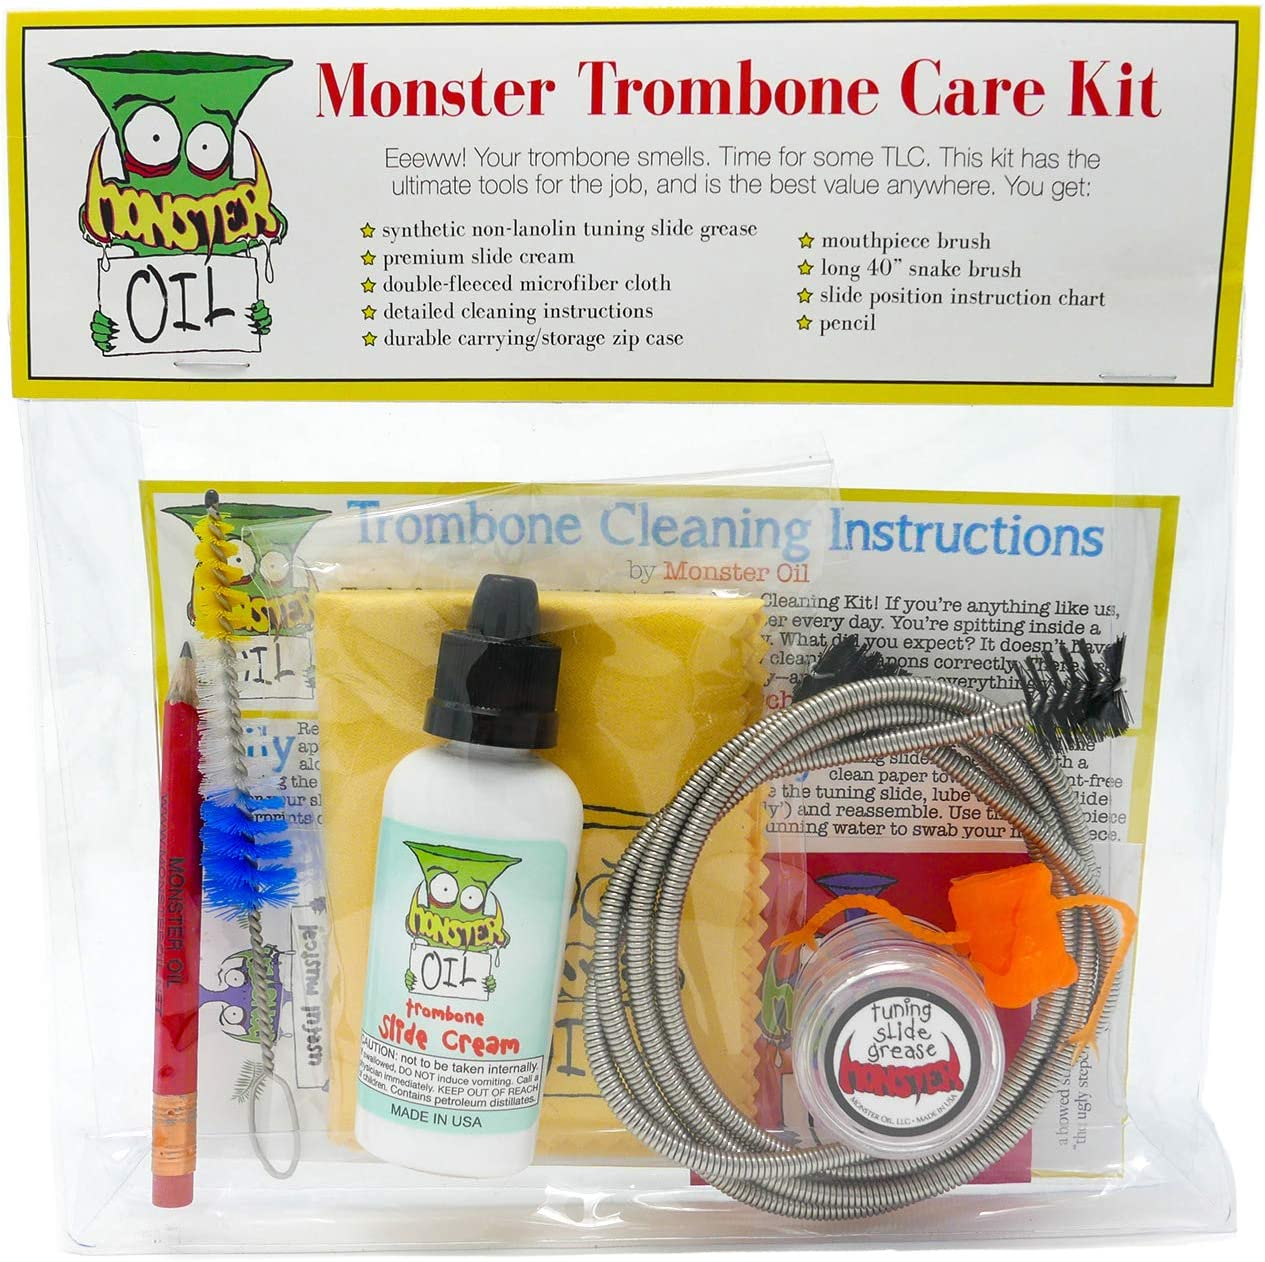 Monster Trombone Care and Cleaning Kit   Slide Cream, Slide Grease, Mouthpiece Brush. Everything You Need to Take Care of and Clean Your Trombone